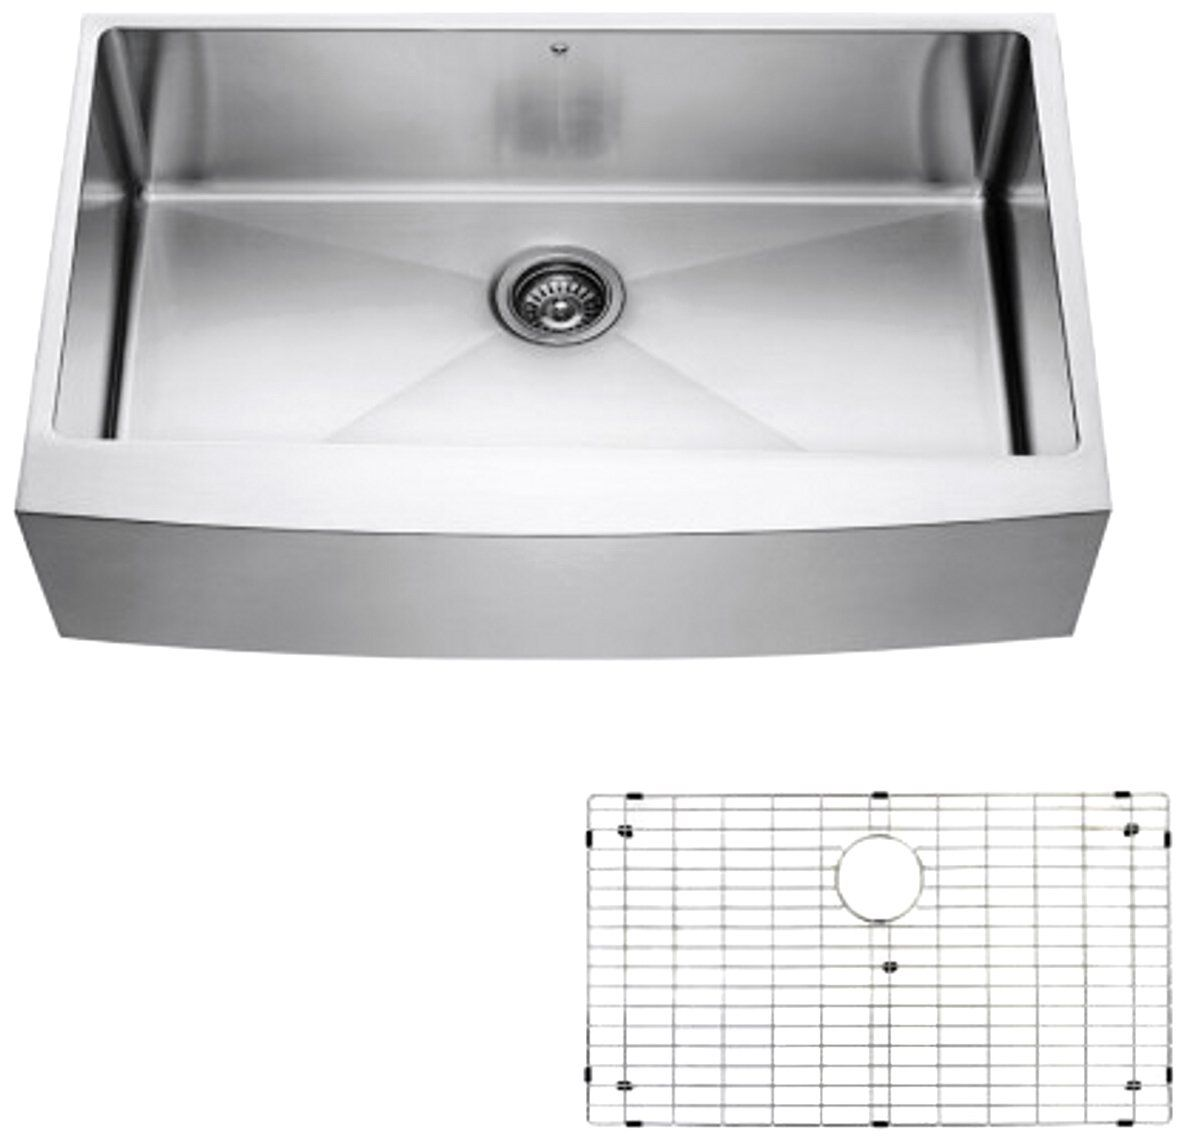 Vigo Vgr3620ck1 36 Inch Farmhouse Stainless Steel Kitchen Sink Grid And Strainer A Stainless Steel Kitchen Sink Steel Kitchen Sink Stainless Steel Kitchen